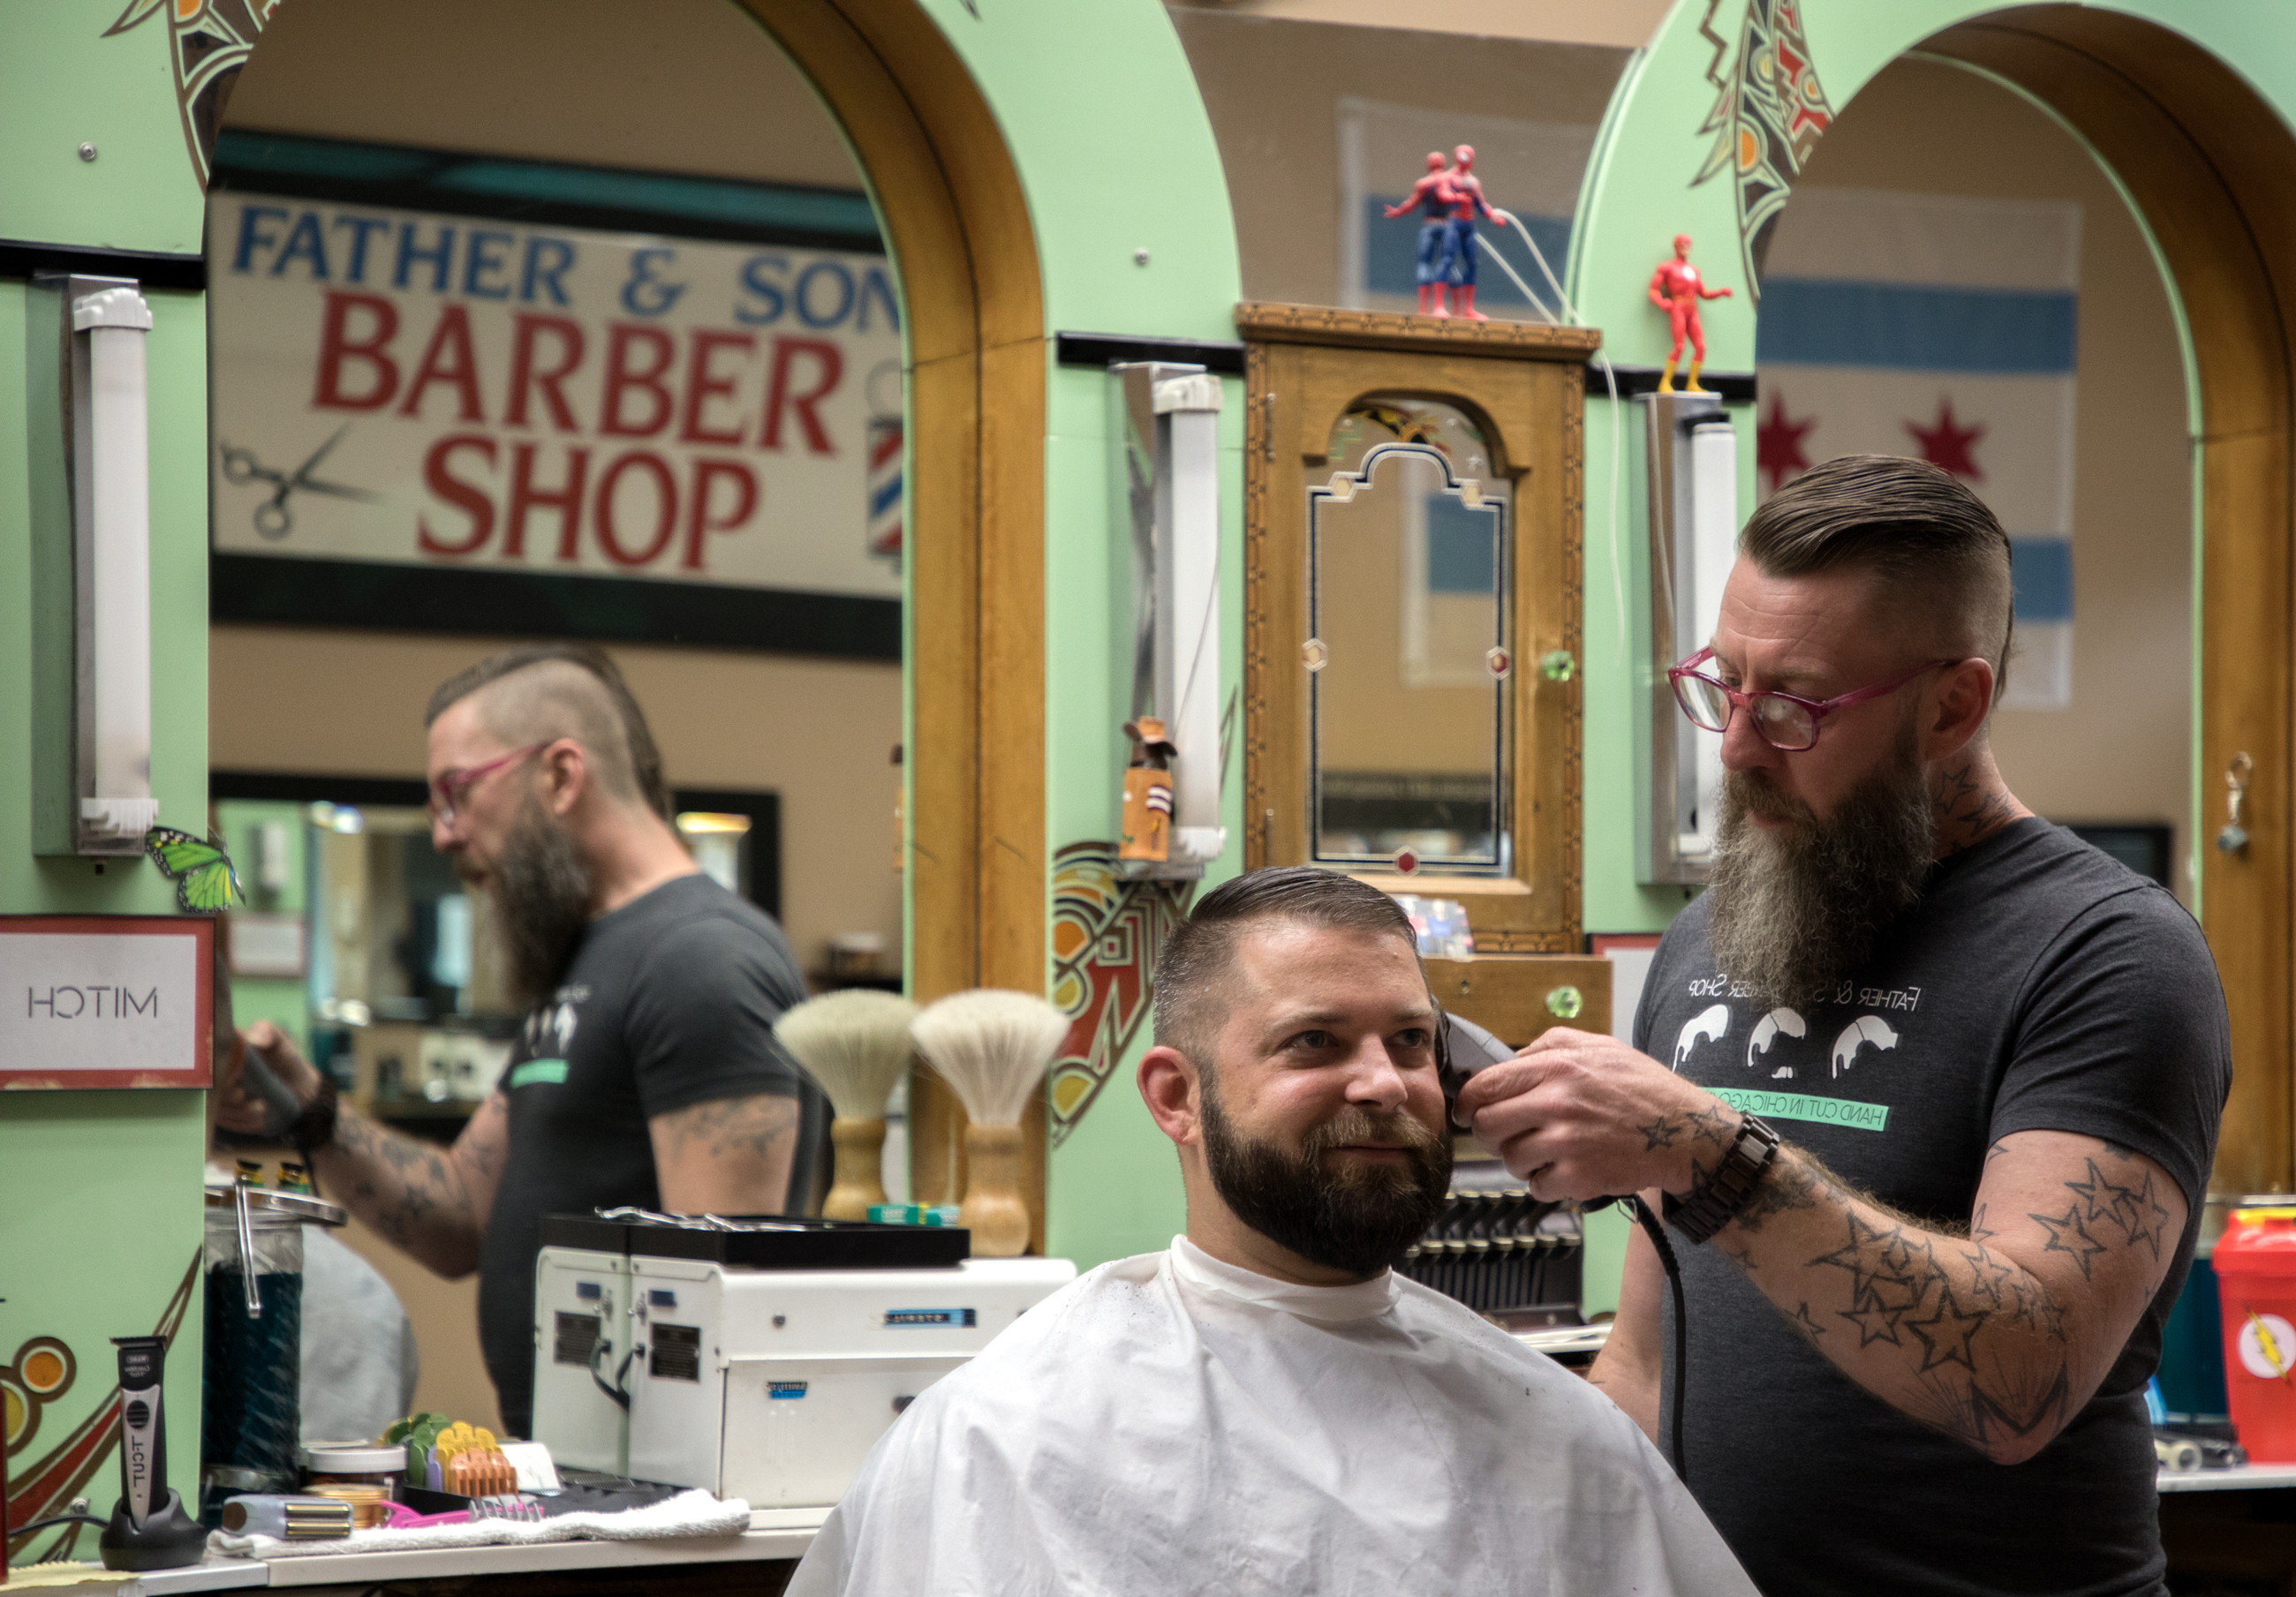 Kyle Wood getting his hair cut by Mitch Koonce at Father and Son barbershop. (Andrew Gill/WBEZ)